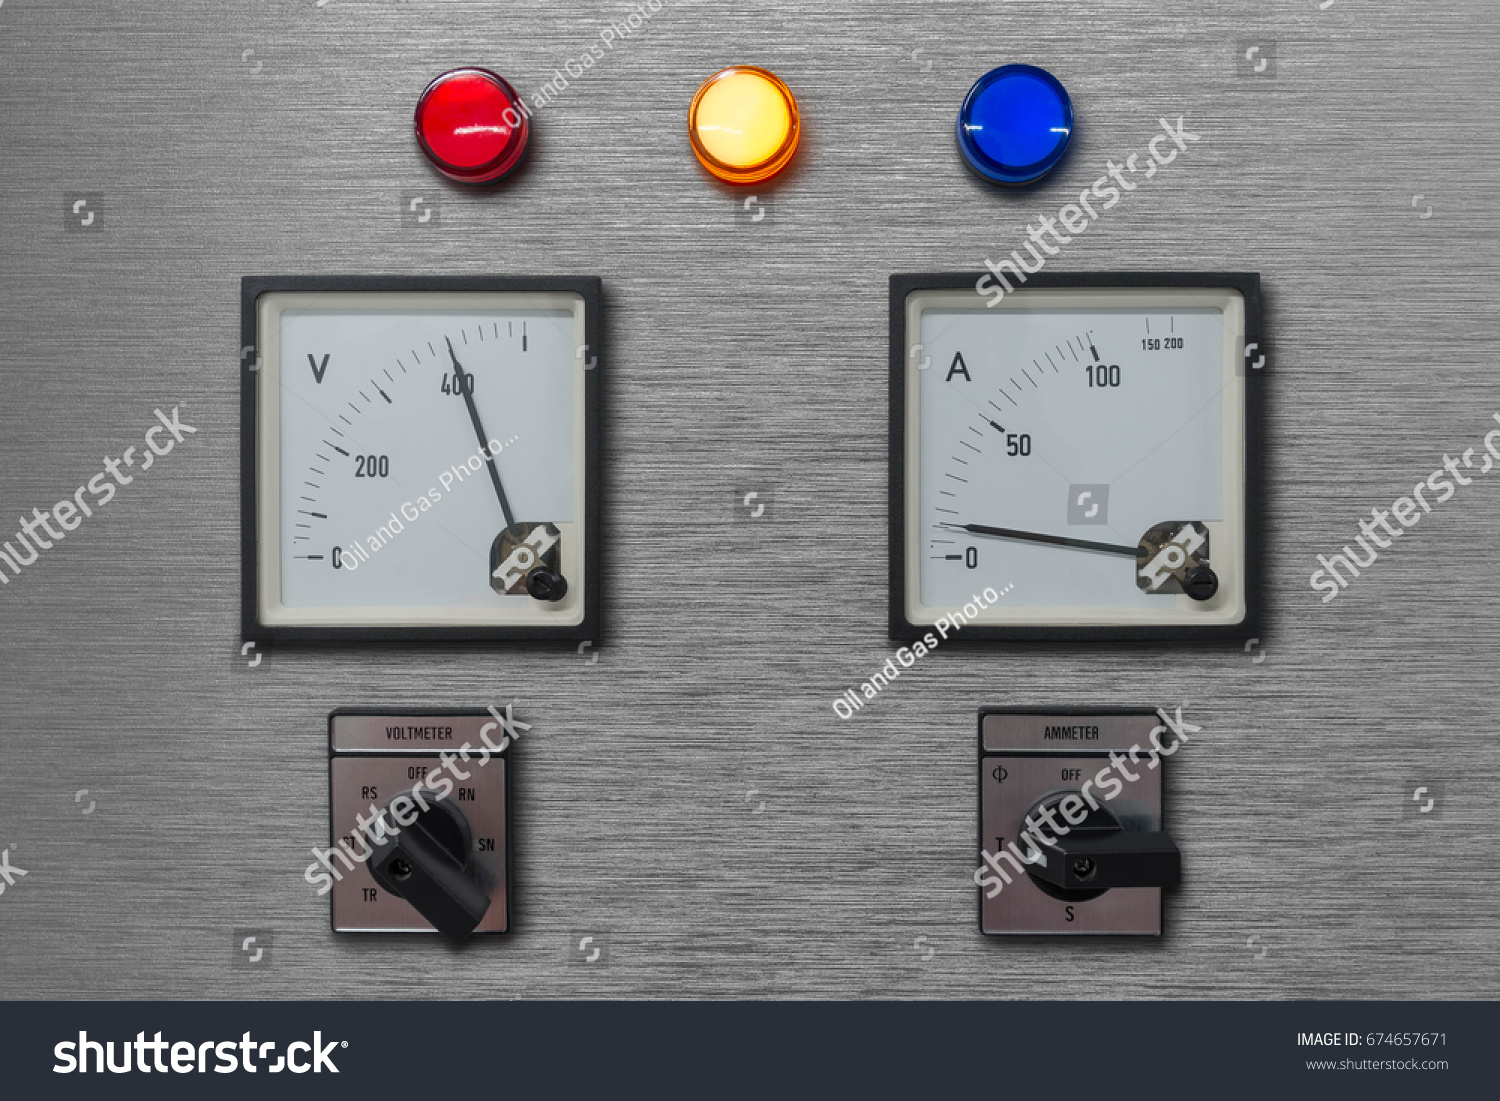 Electrical Control Panel Volt Amp Meter Stock Photo (Edit Now ...